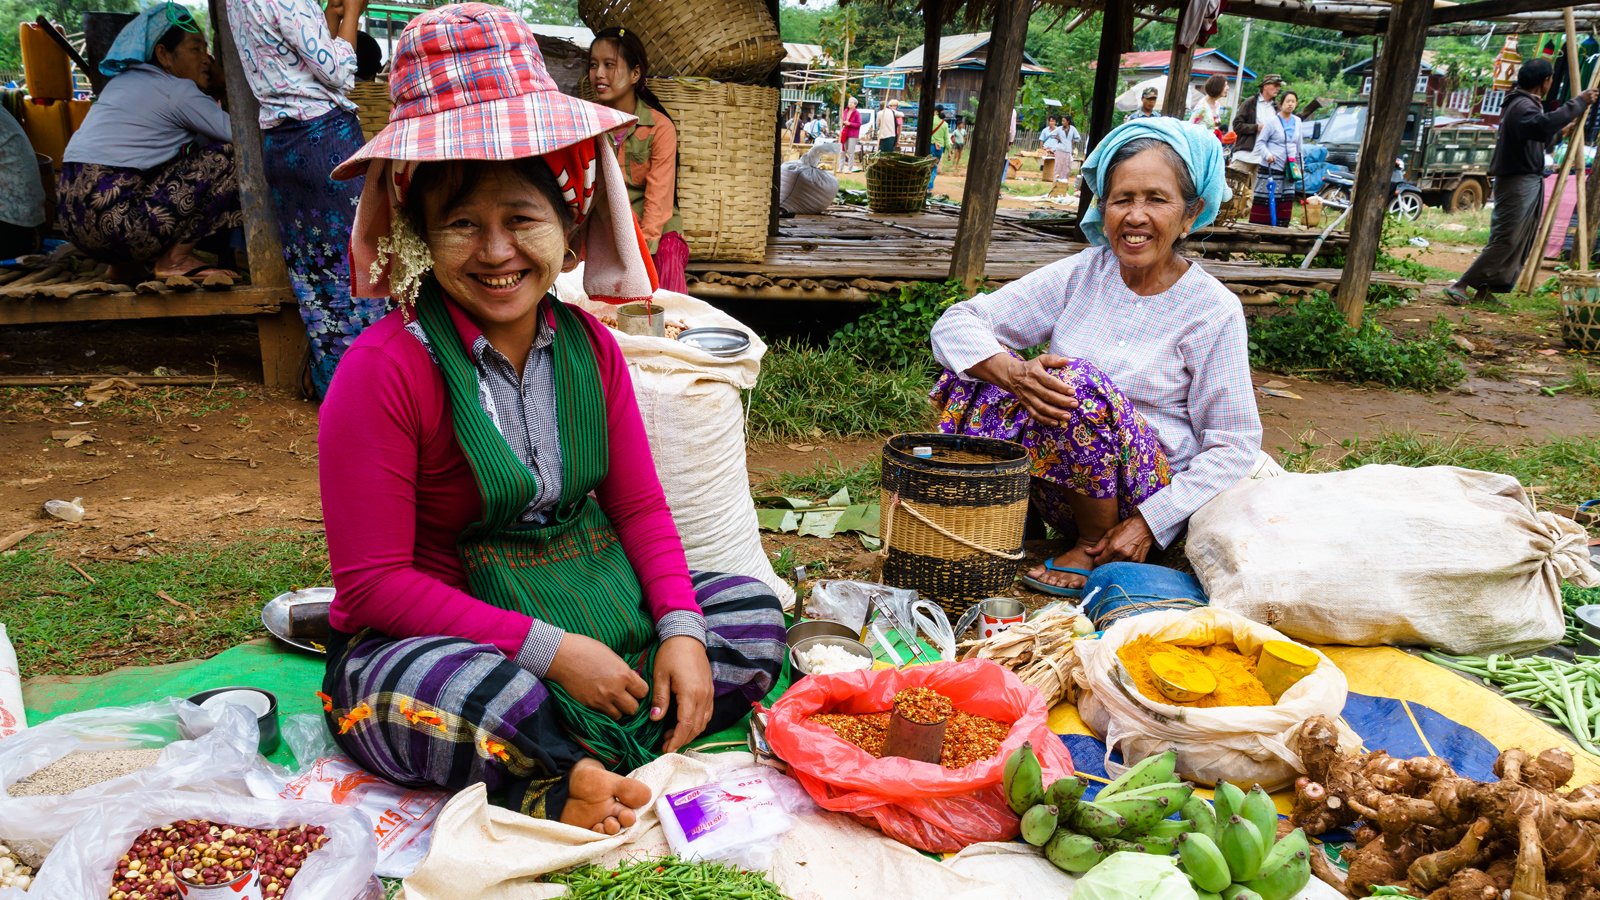 Woman smiling among many artisan-crafted hats